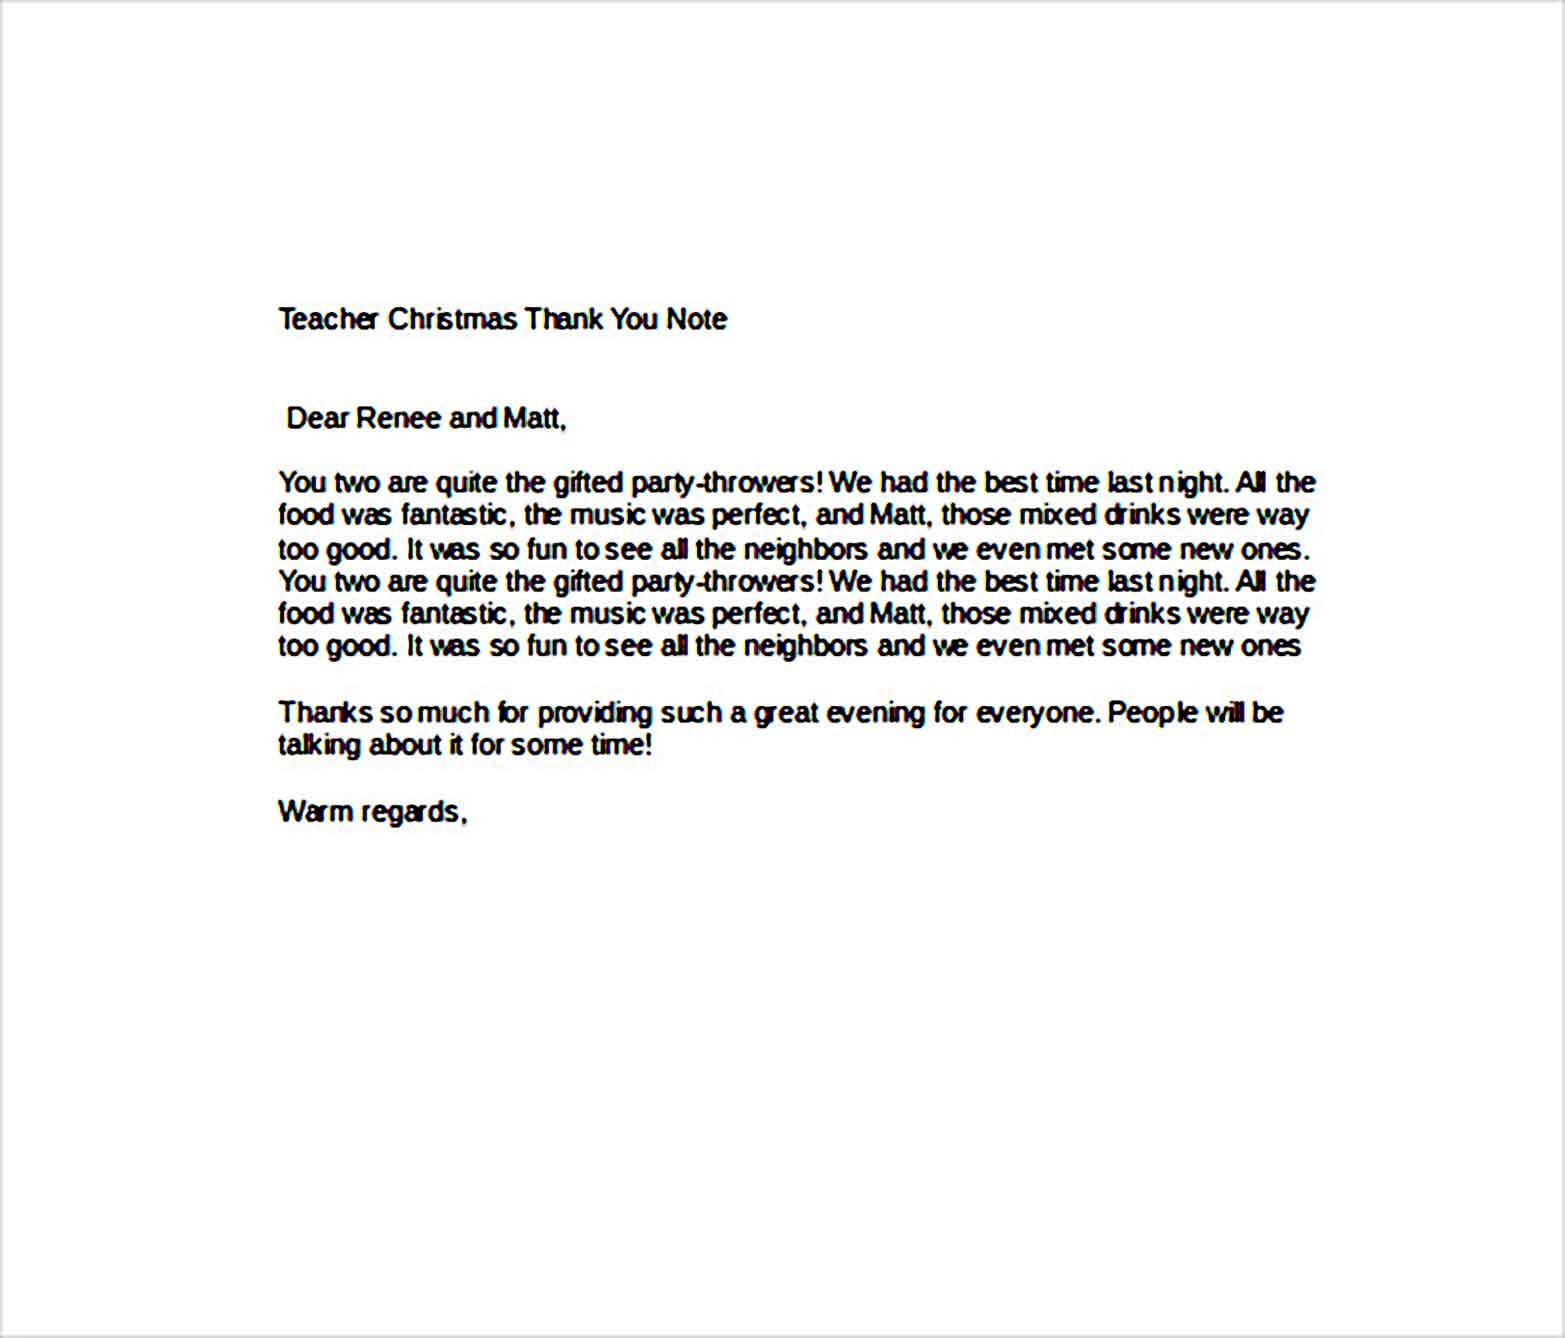 teacher christmas thank you note1